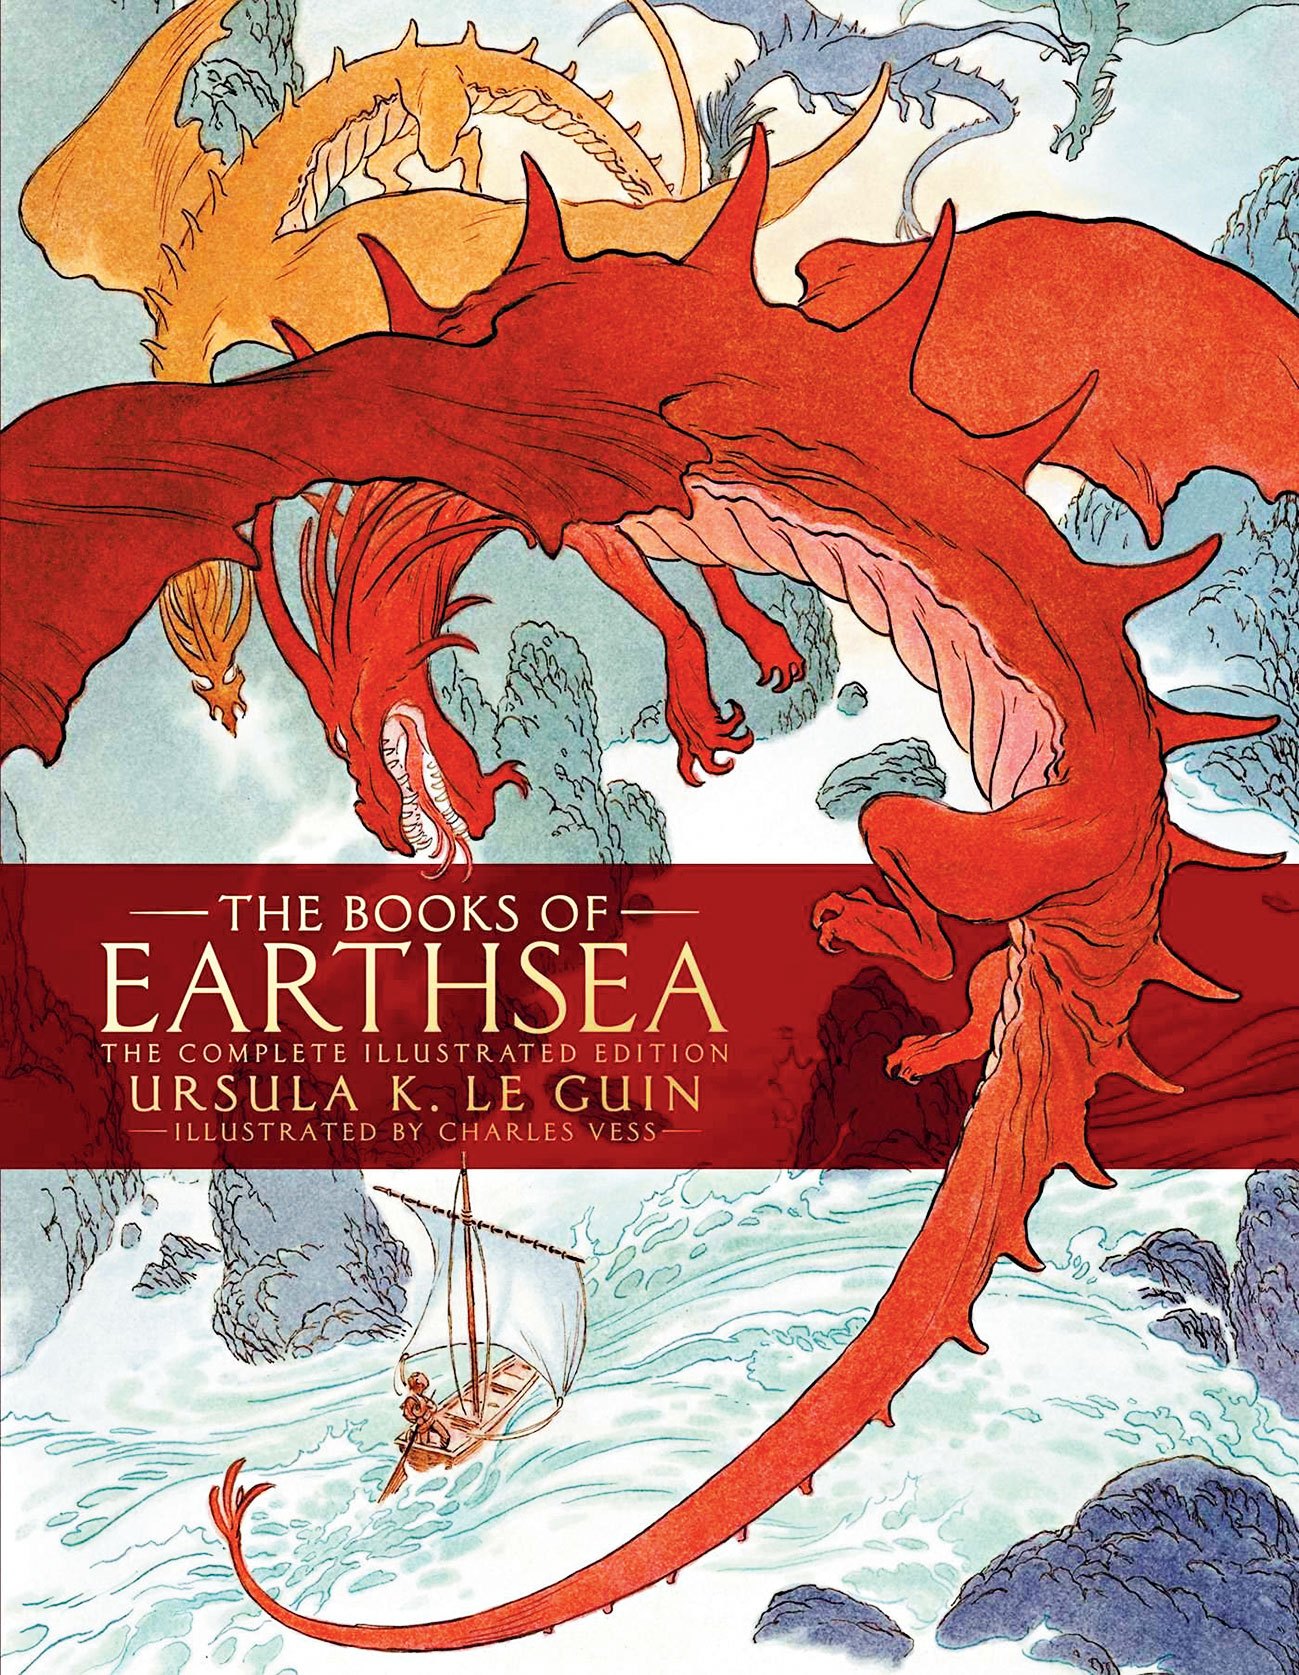 Book jacket of The Books of Earthsea: The Complete Illustrated Edition